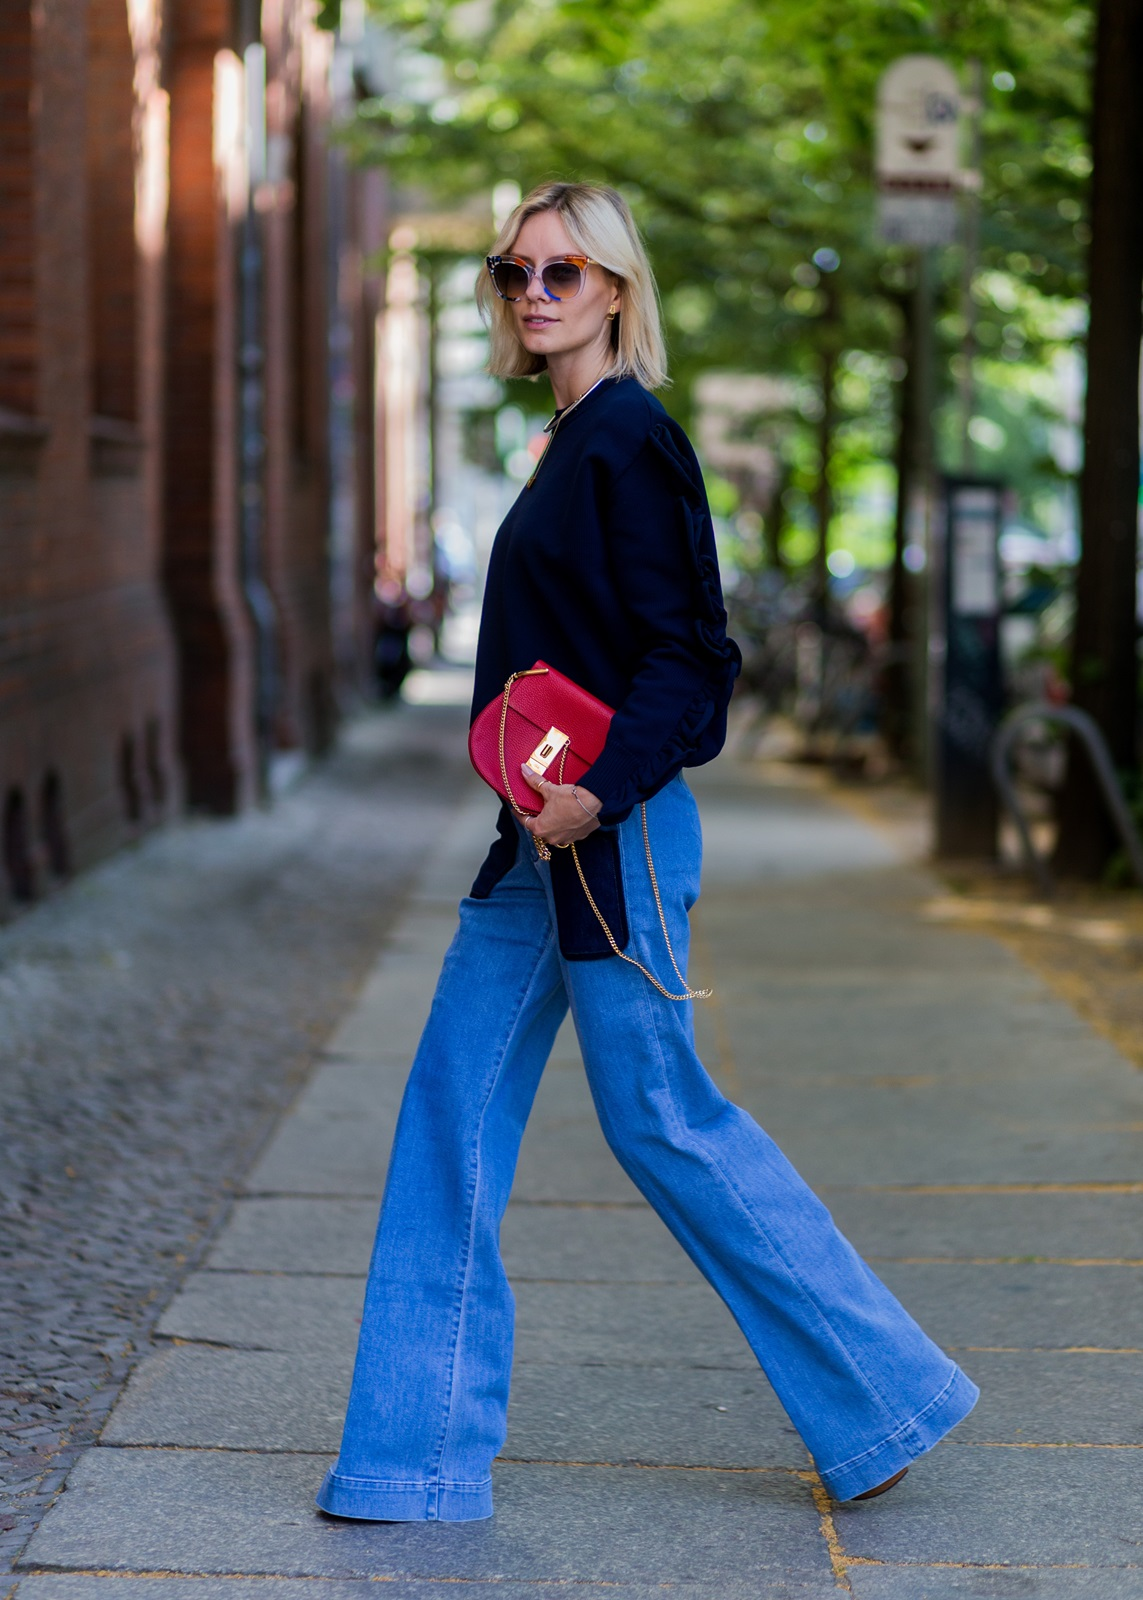 BERLIN, GERMANY - JUNE 28: Lisa Hahnbueck wearing Fendi sunglasses, wide leg denim pants, a navy jumper from Victoria Beckham, red Chloe bag and Guess heels during the Mercedes-Benz Fashion Week Berlin Spring/Summer 2017 on June 28, 2016 in Berlin, Germany. (Photo by Christian Vierig/Getty Images) *** Local Caption *** Lisa Hahnbueck